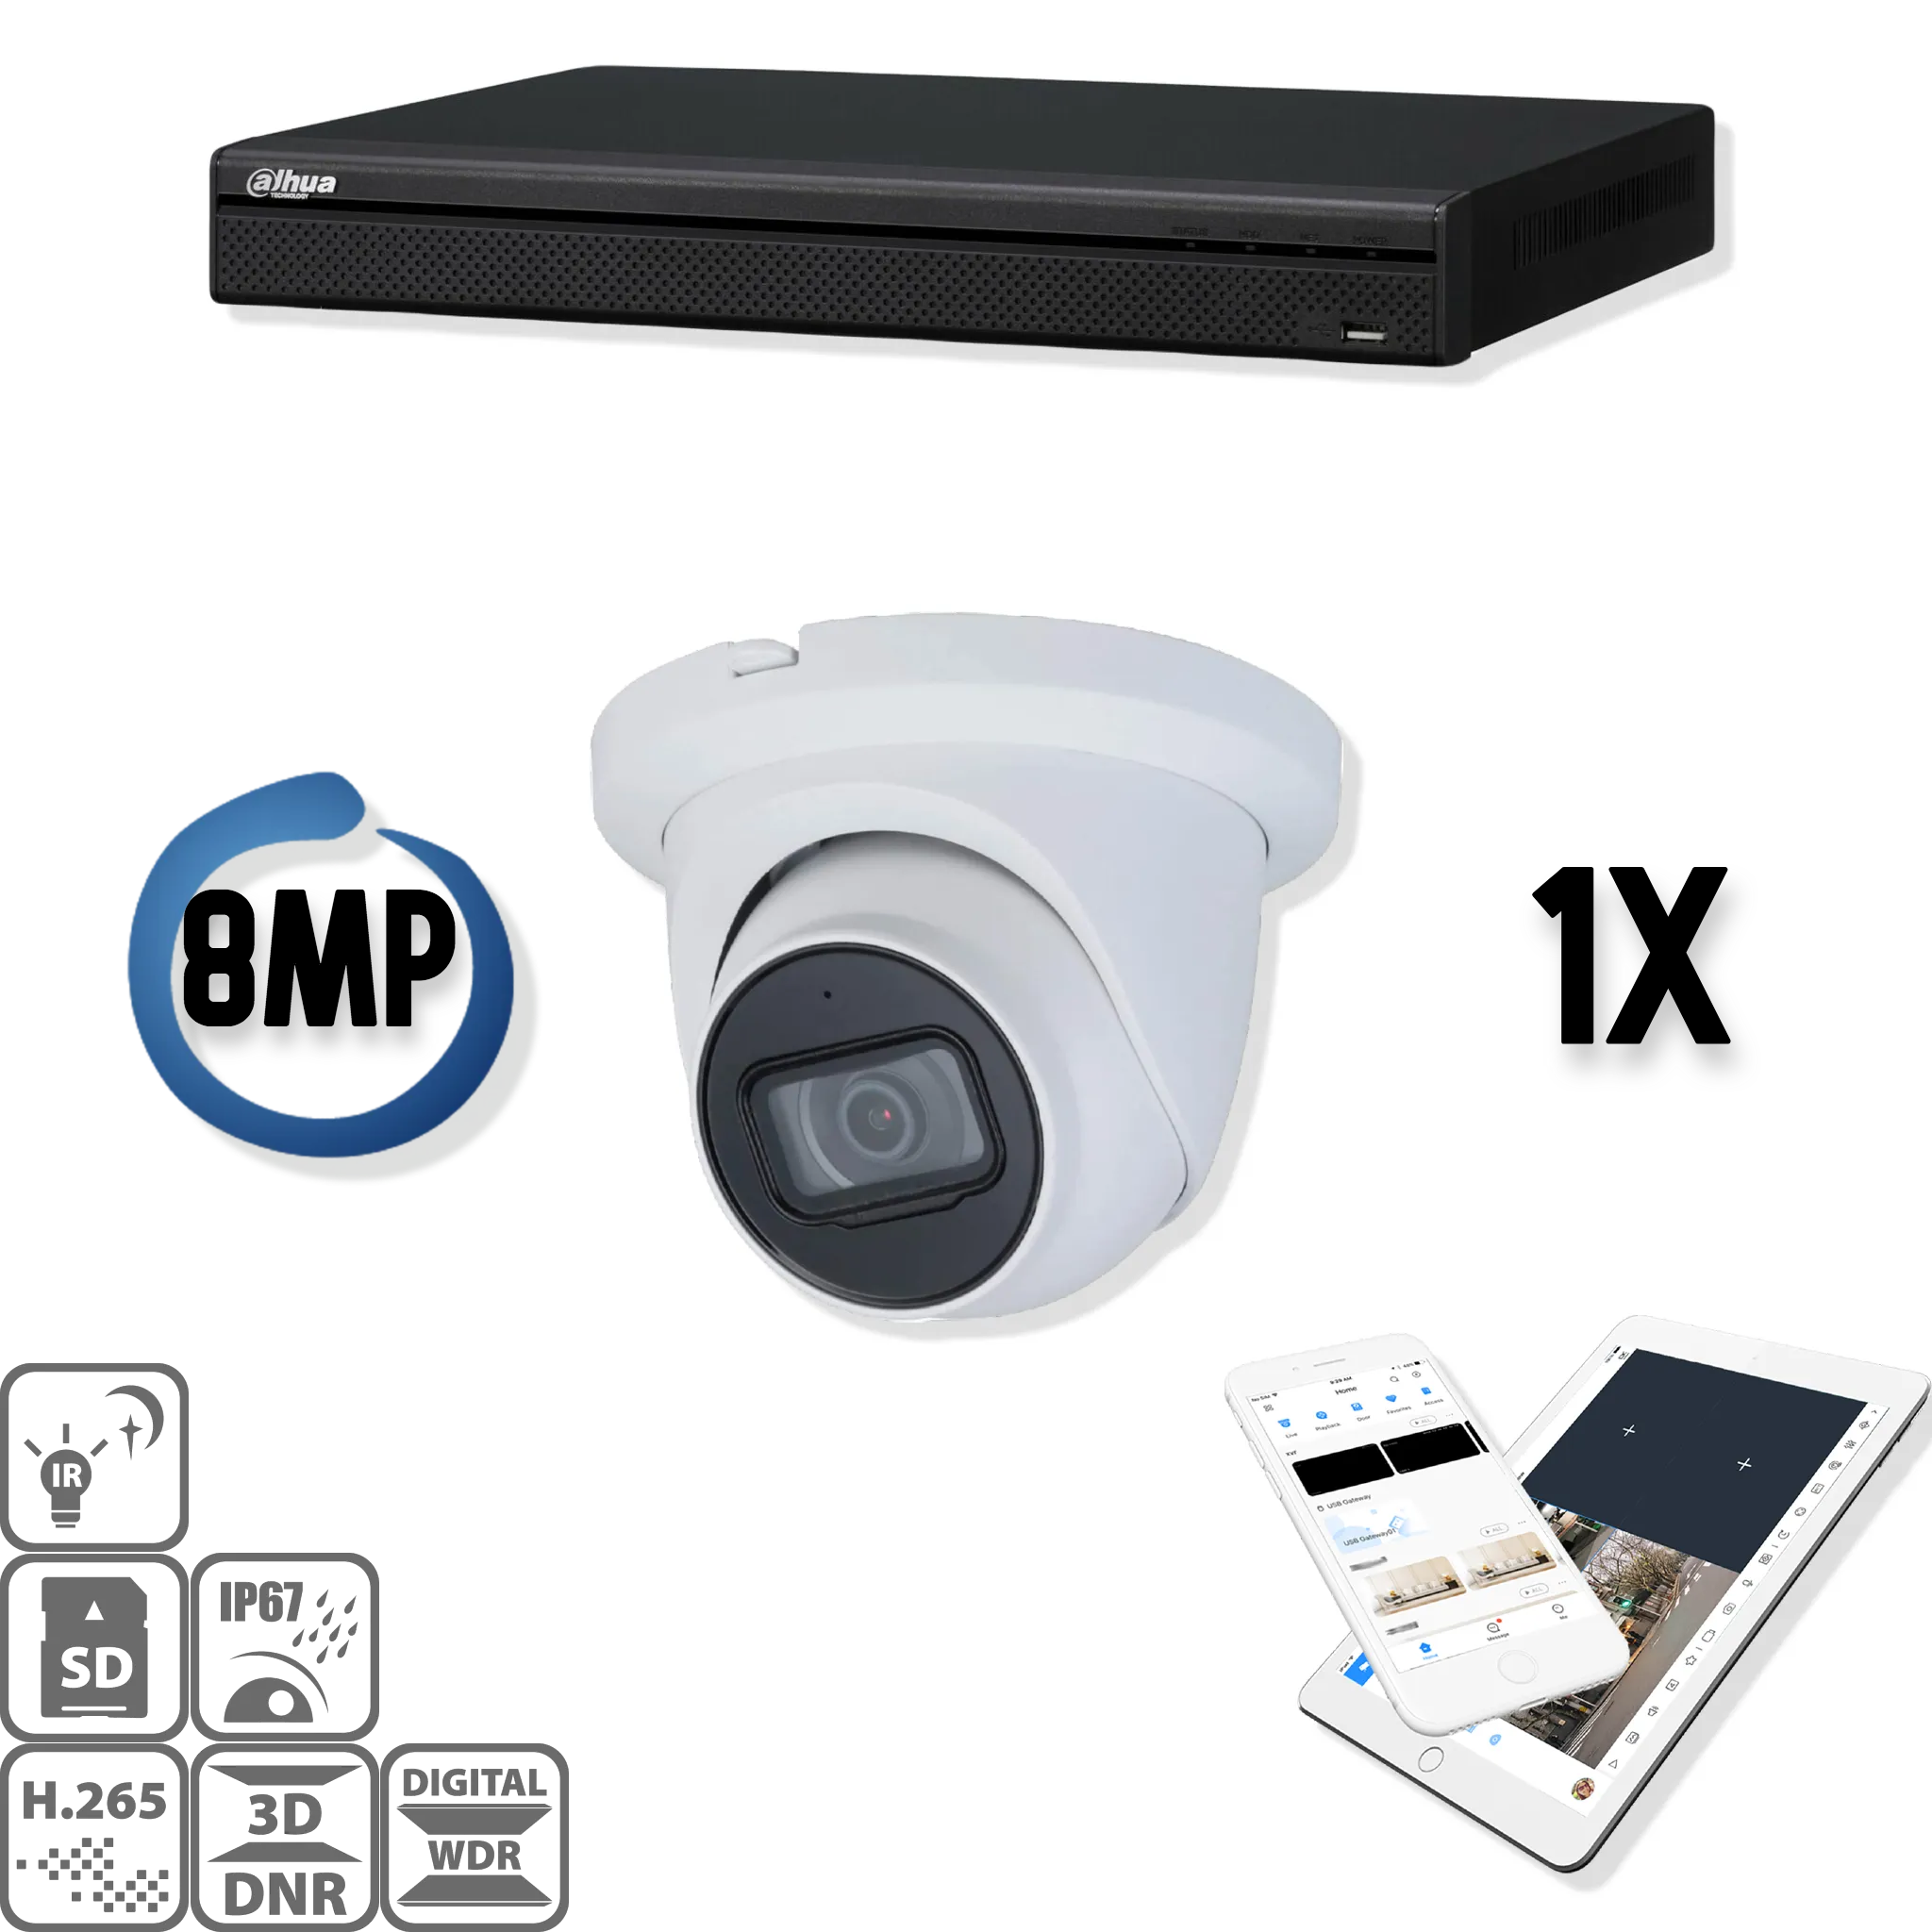 Ultra HD IP-Kit 1x Eyeball 8 Megapixel Kamera-Sicherheitsset